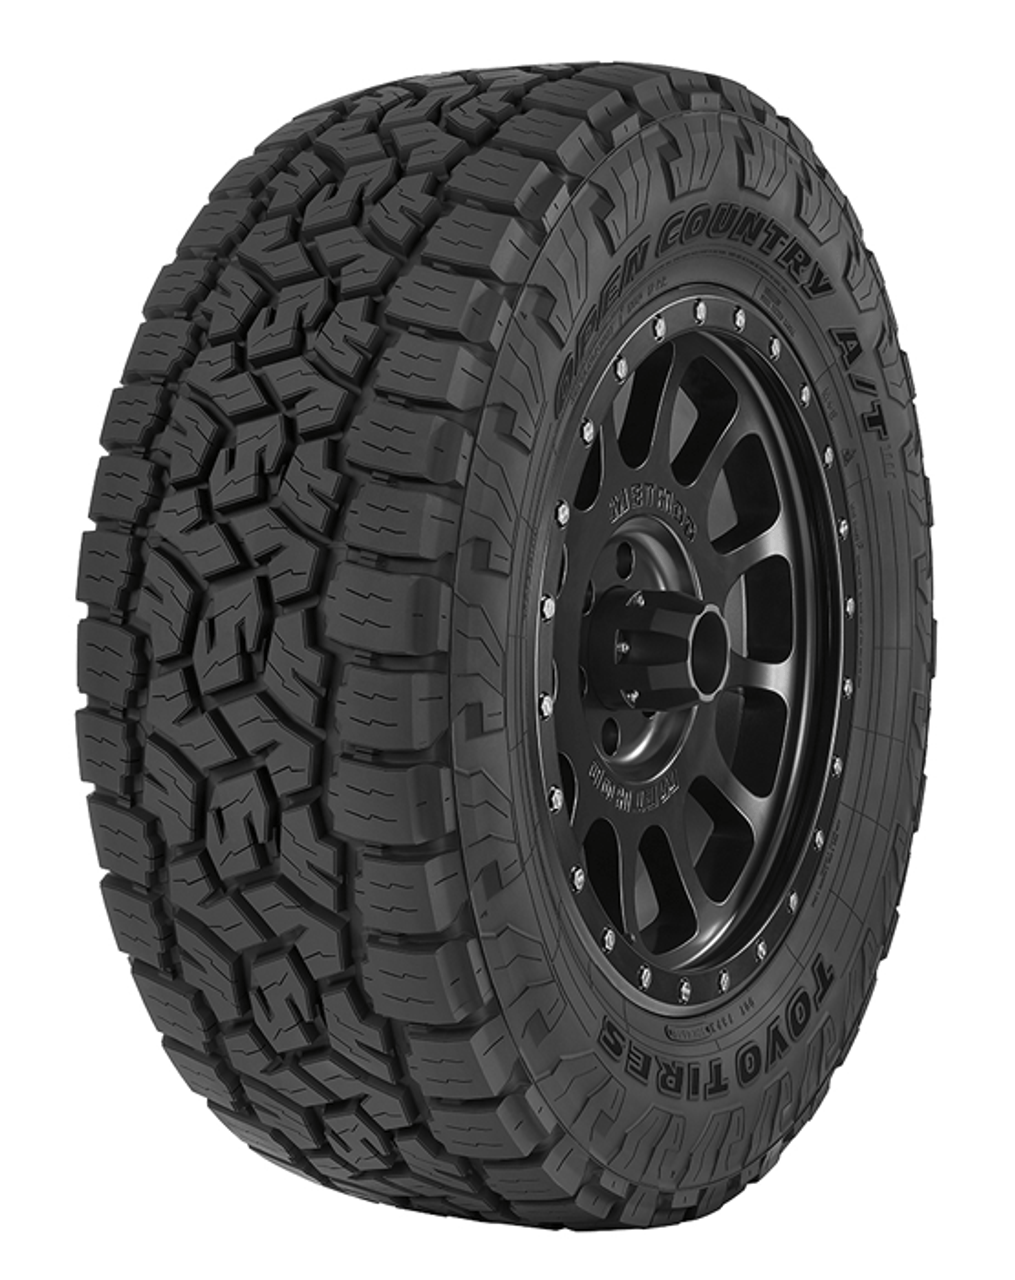 Cheapest Tires Online Free Shipping >> Toyo® Open Country ATIII 285/75R17 Tires   355690   285 75 ...